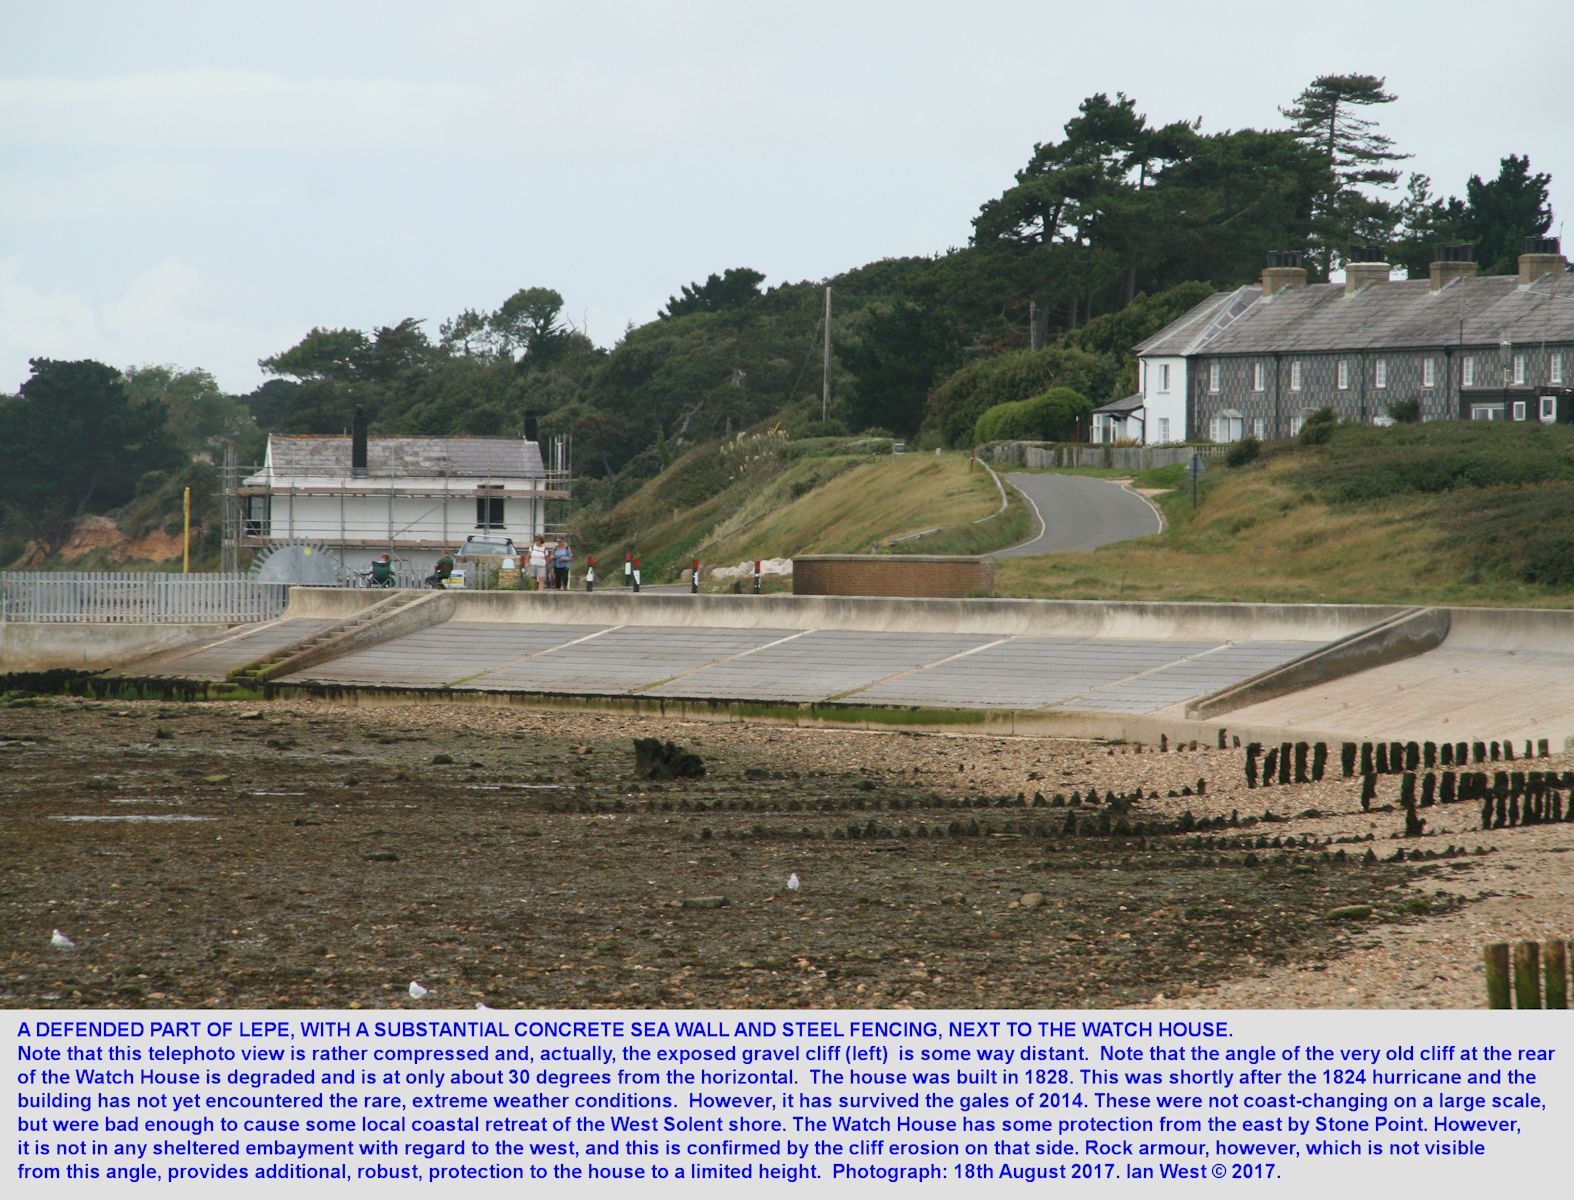 The east side of the Watch House, Lepe, Hampshire, with part of the coastguard cottages, a hill behind it, 18th August 2017